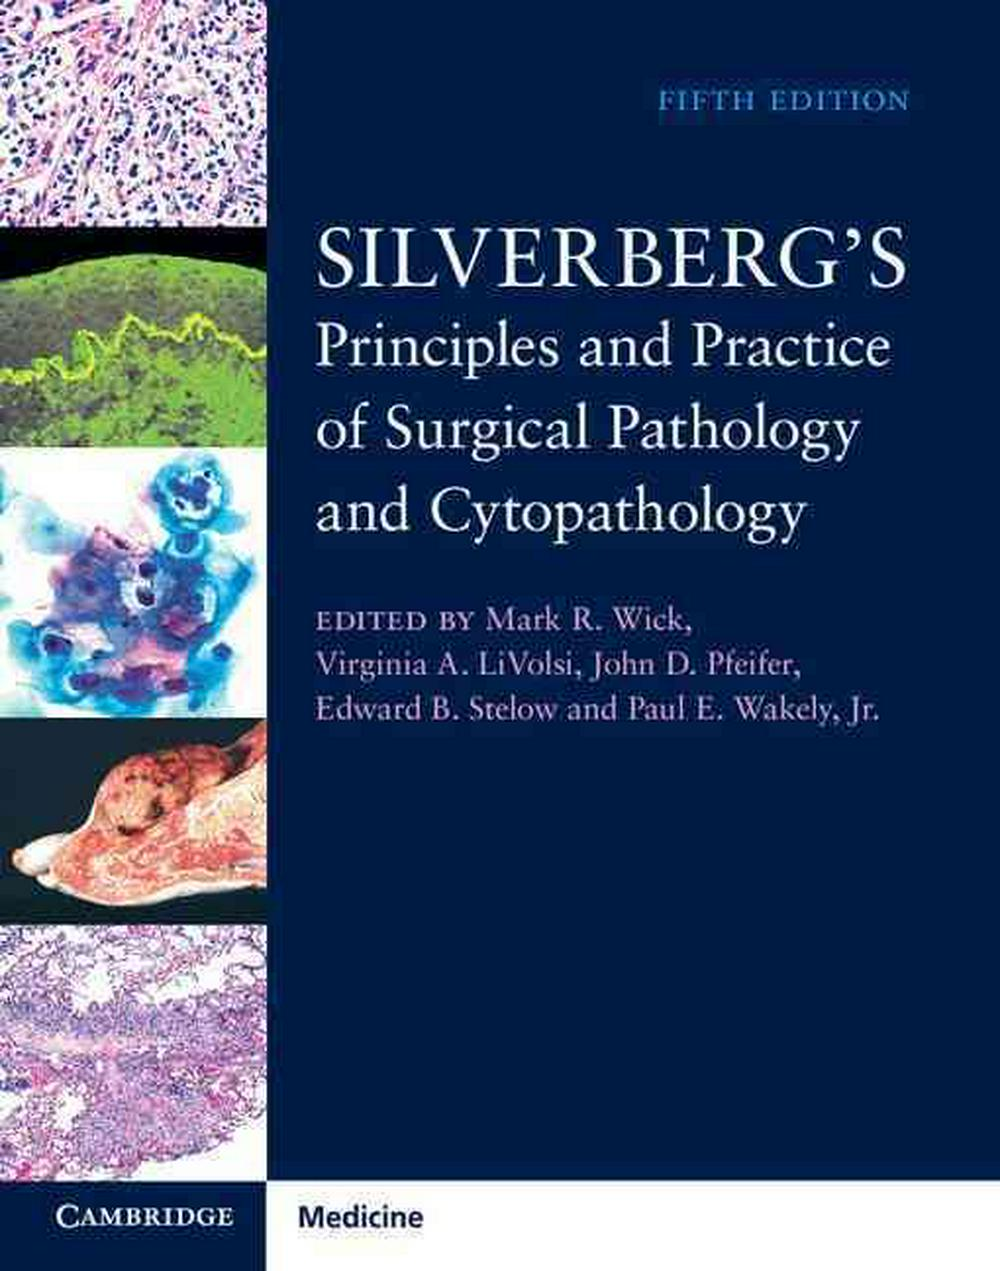 Silverberg's Principles and Practice of Surgical Pathology and Cytopathology 4 Volume Set